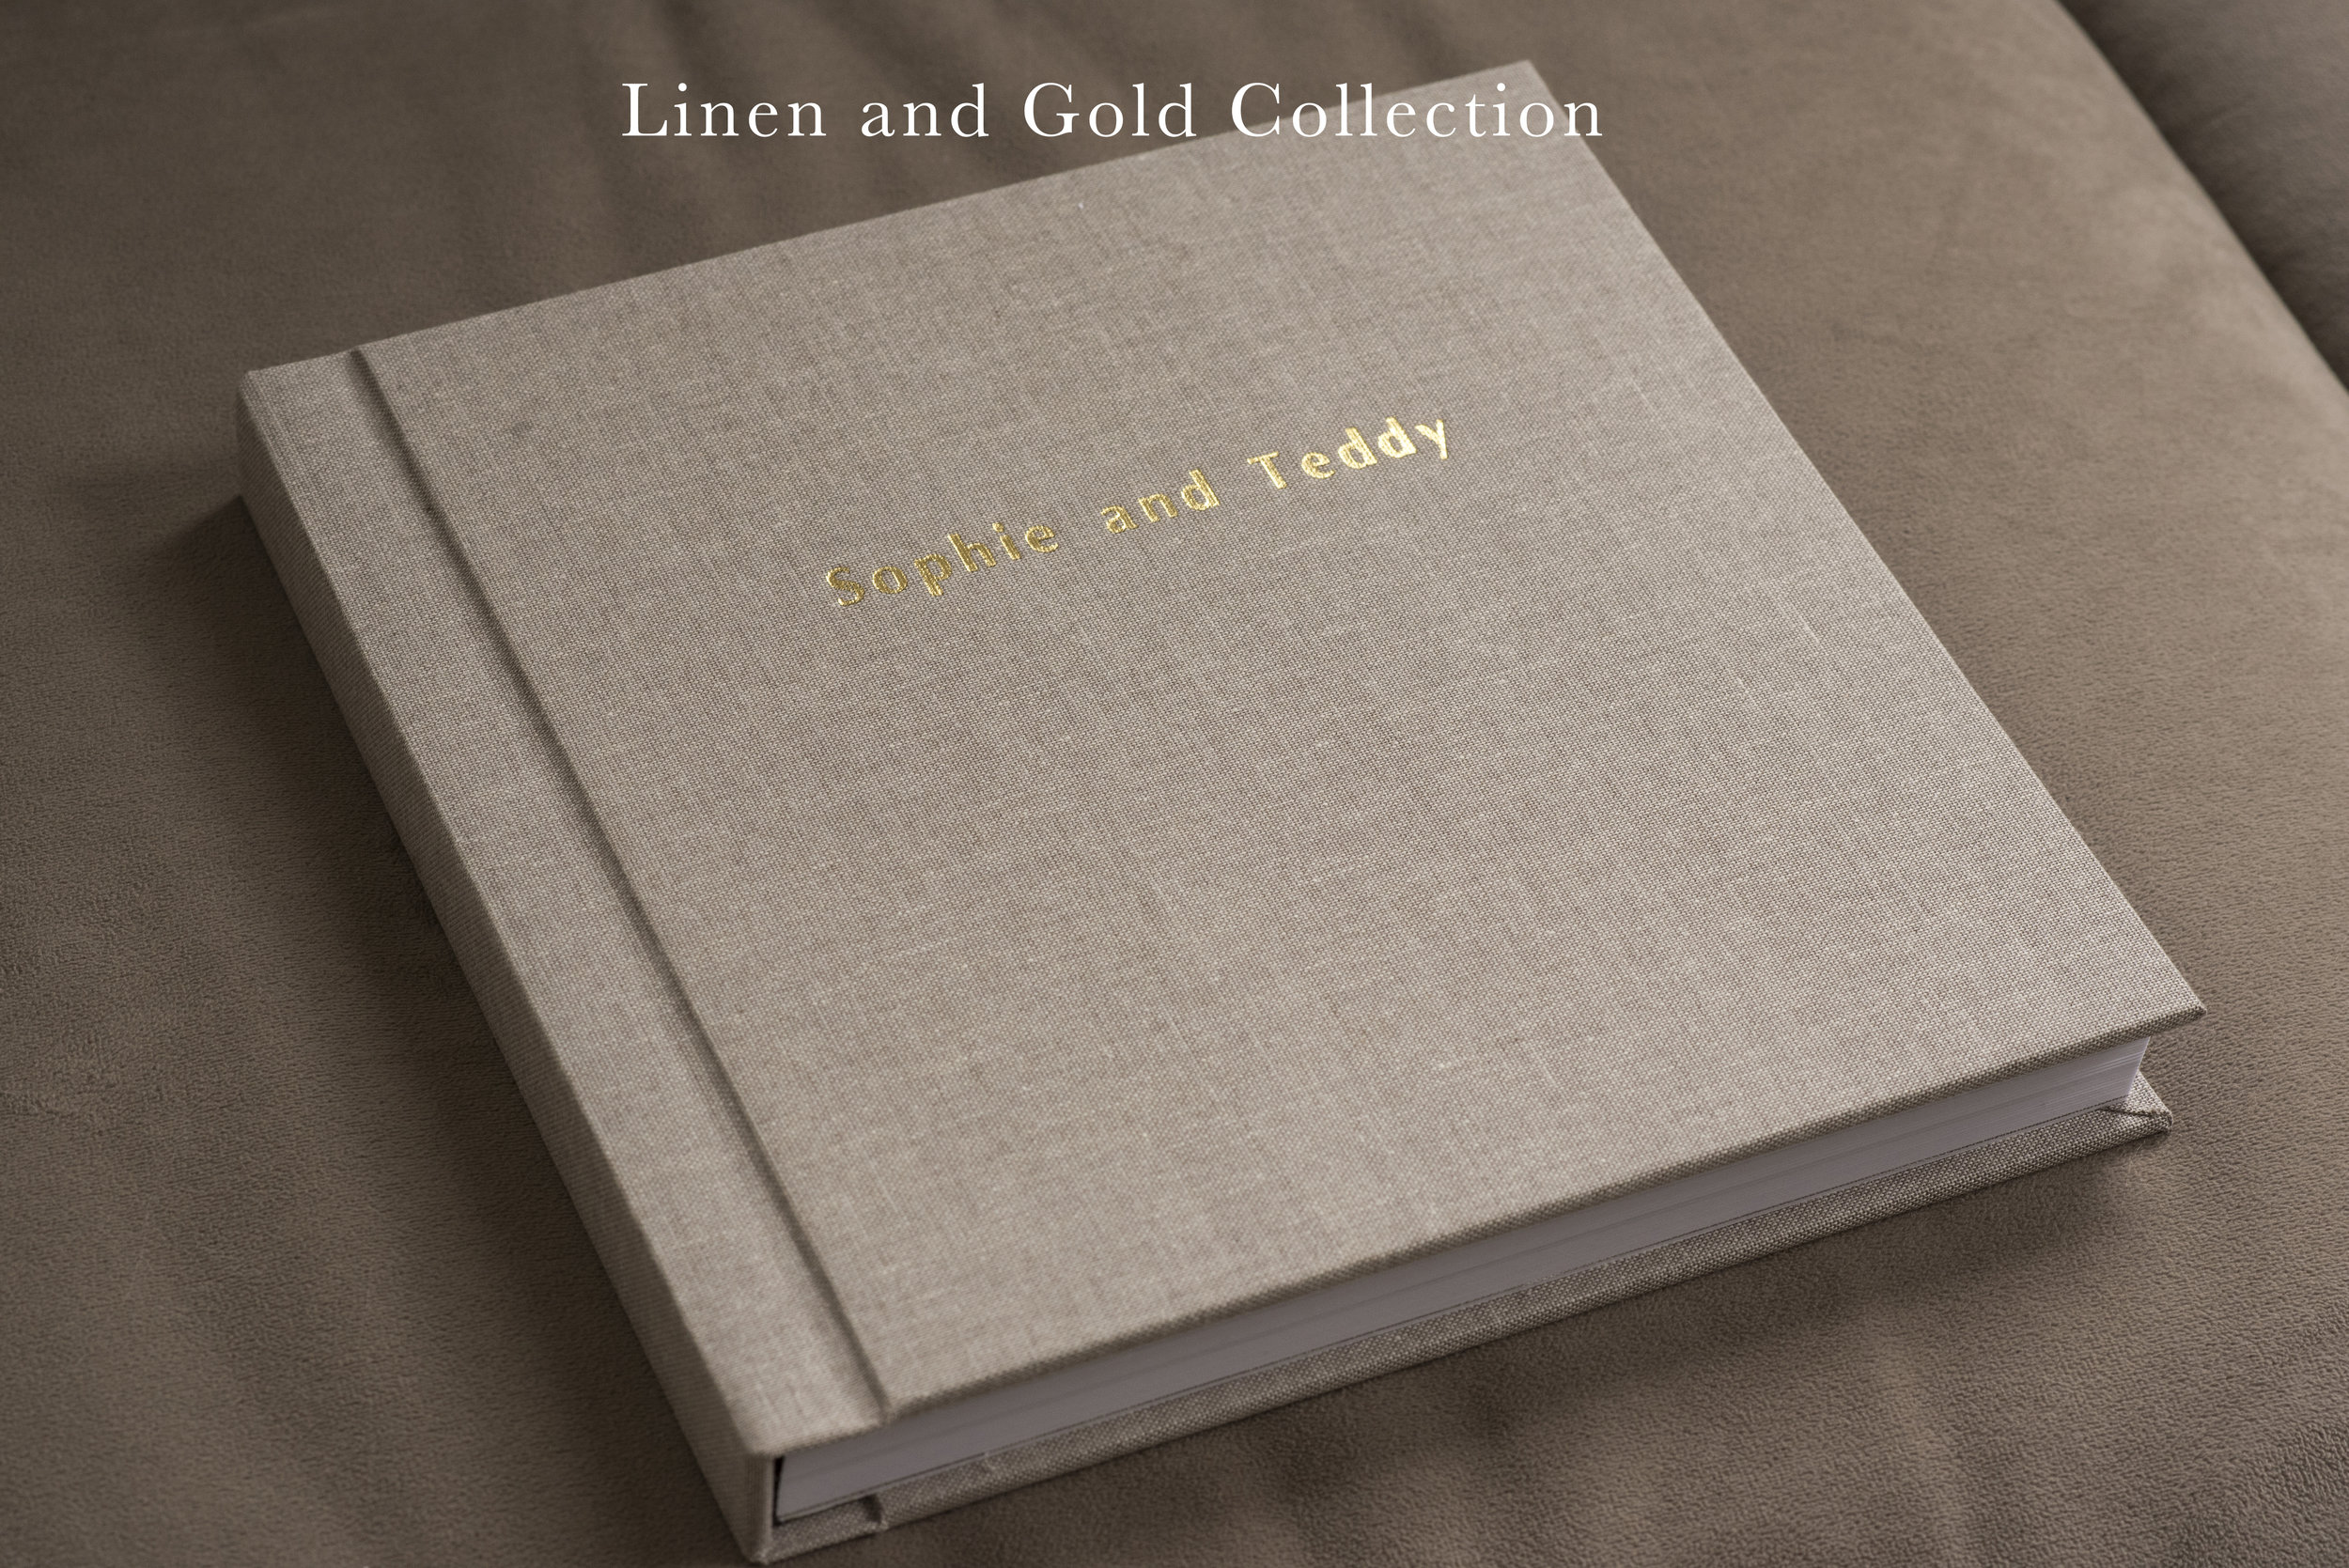 Linen Collectiongold font080.jpg